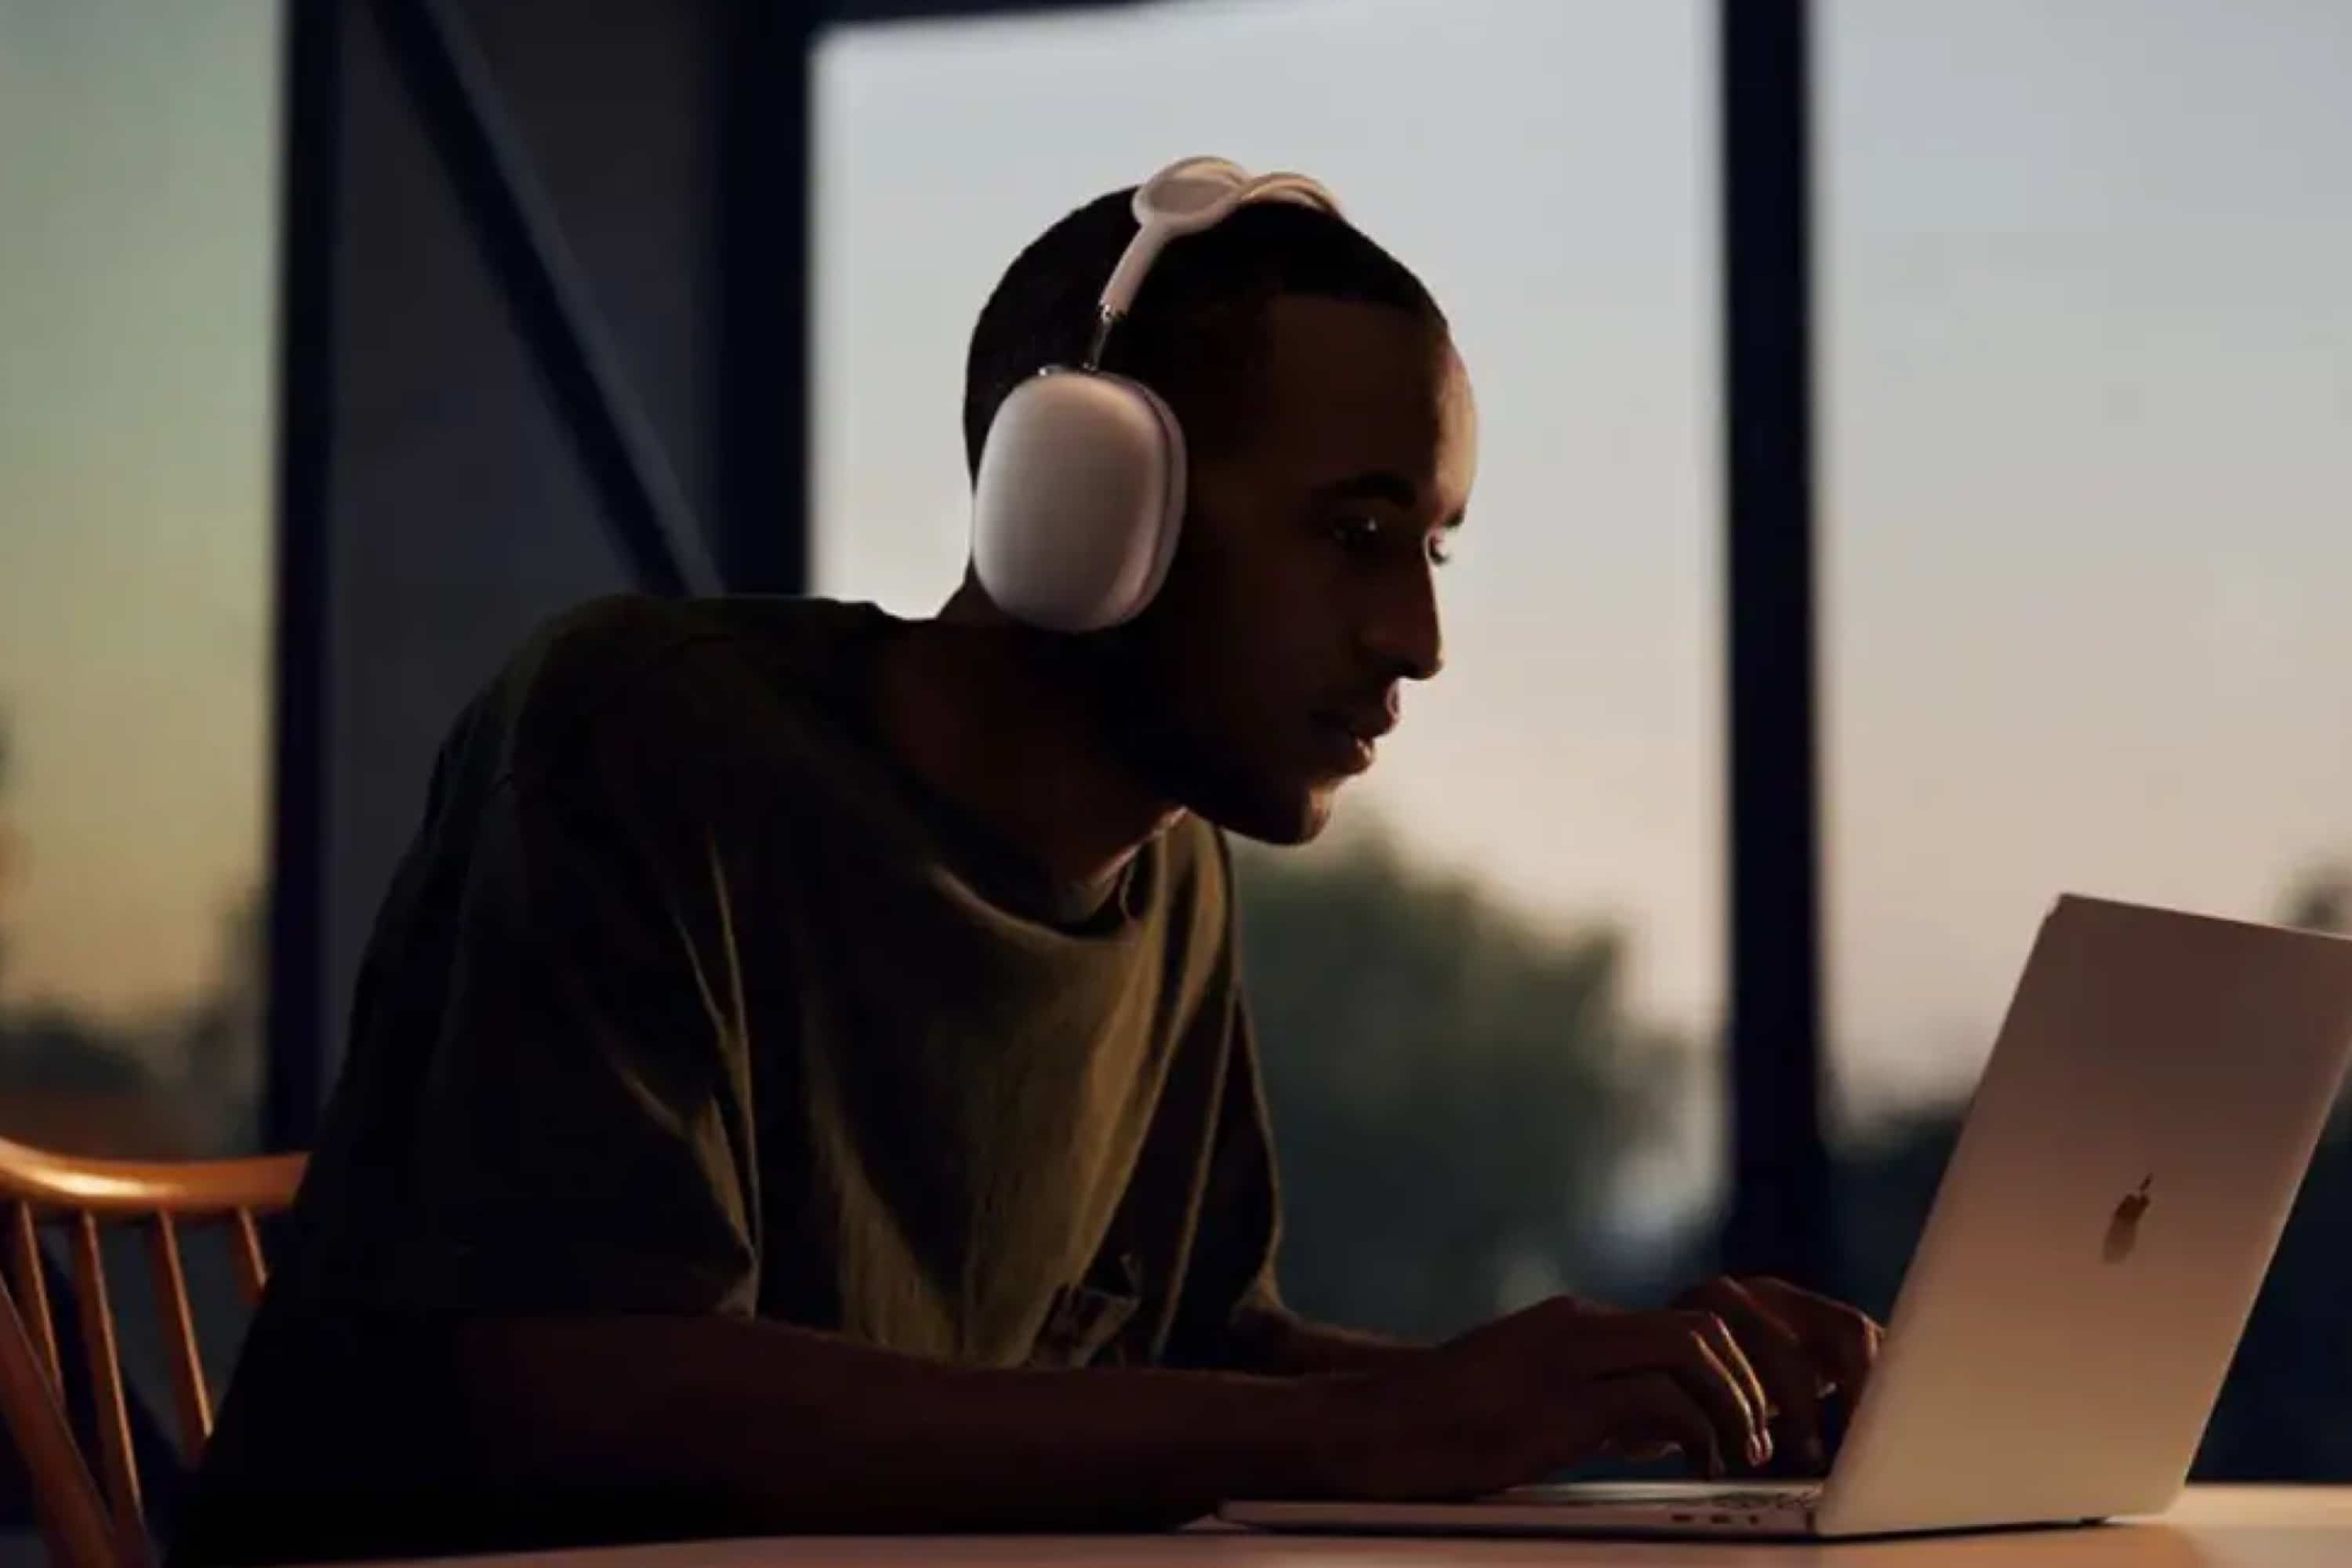 apple-shares-helpful-tips-for-airpods-max-20201215-1